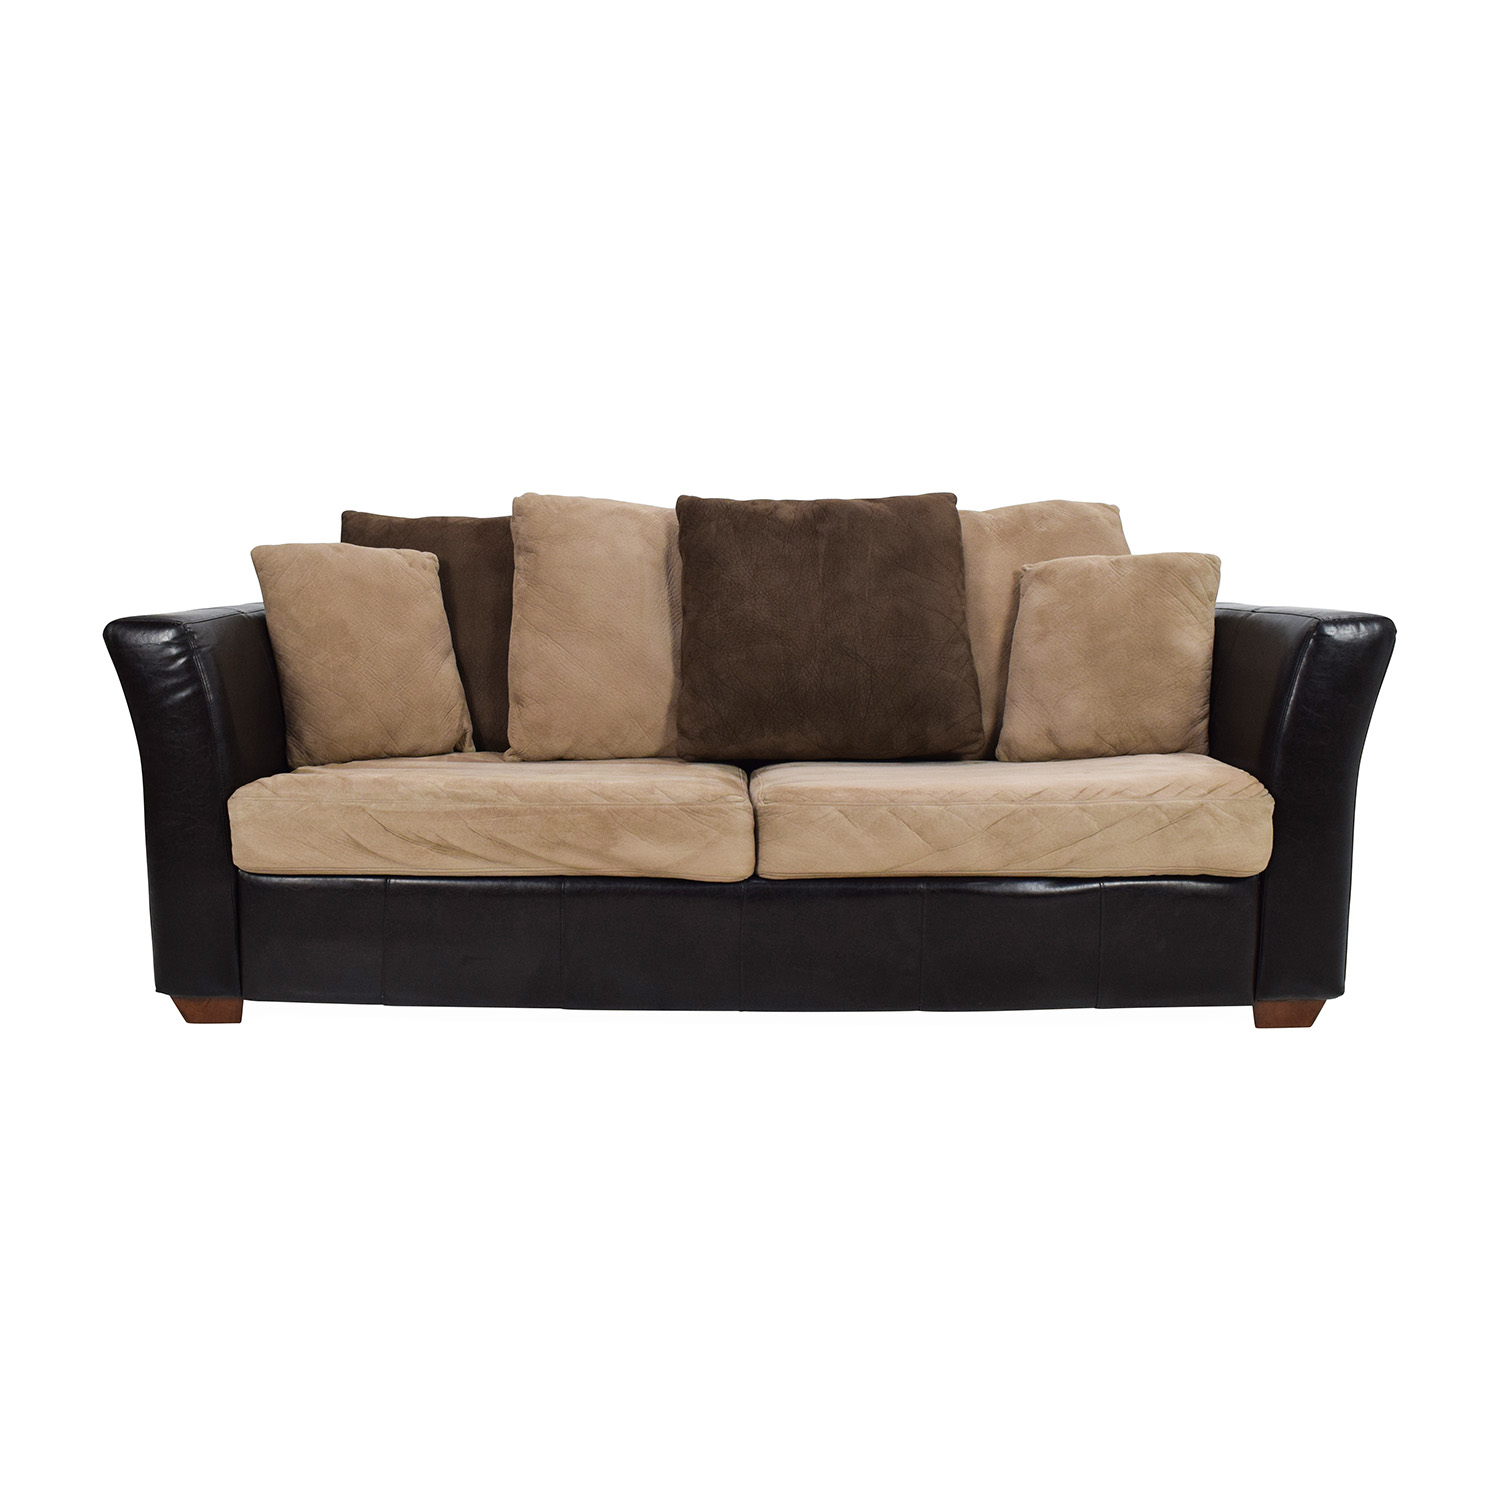 Jennifer Convertibles Sleeper Sofa